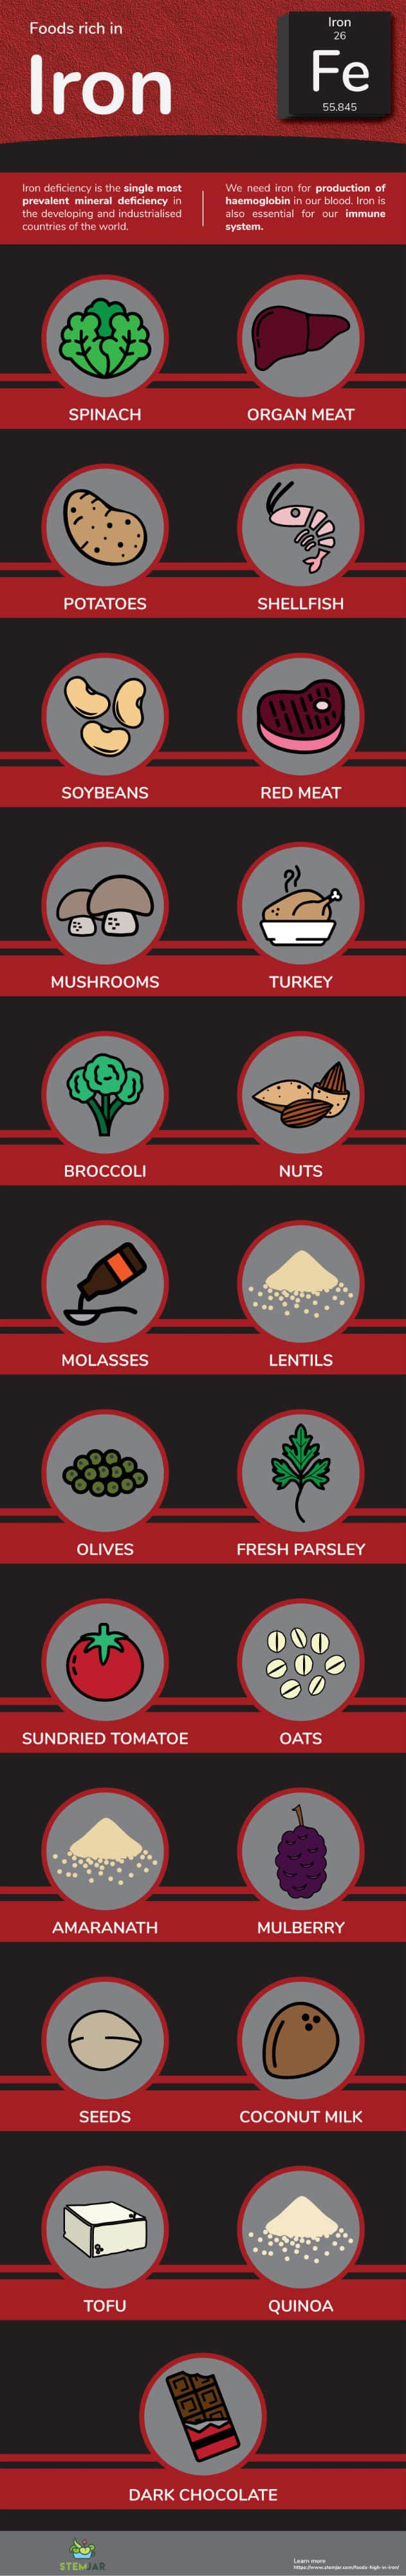 Foods High in Iron info graphic